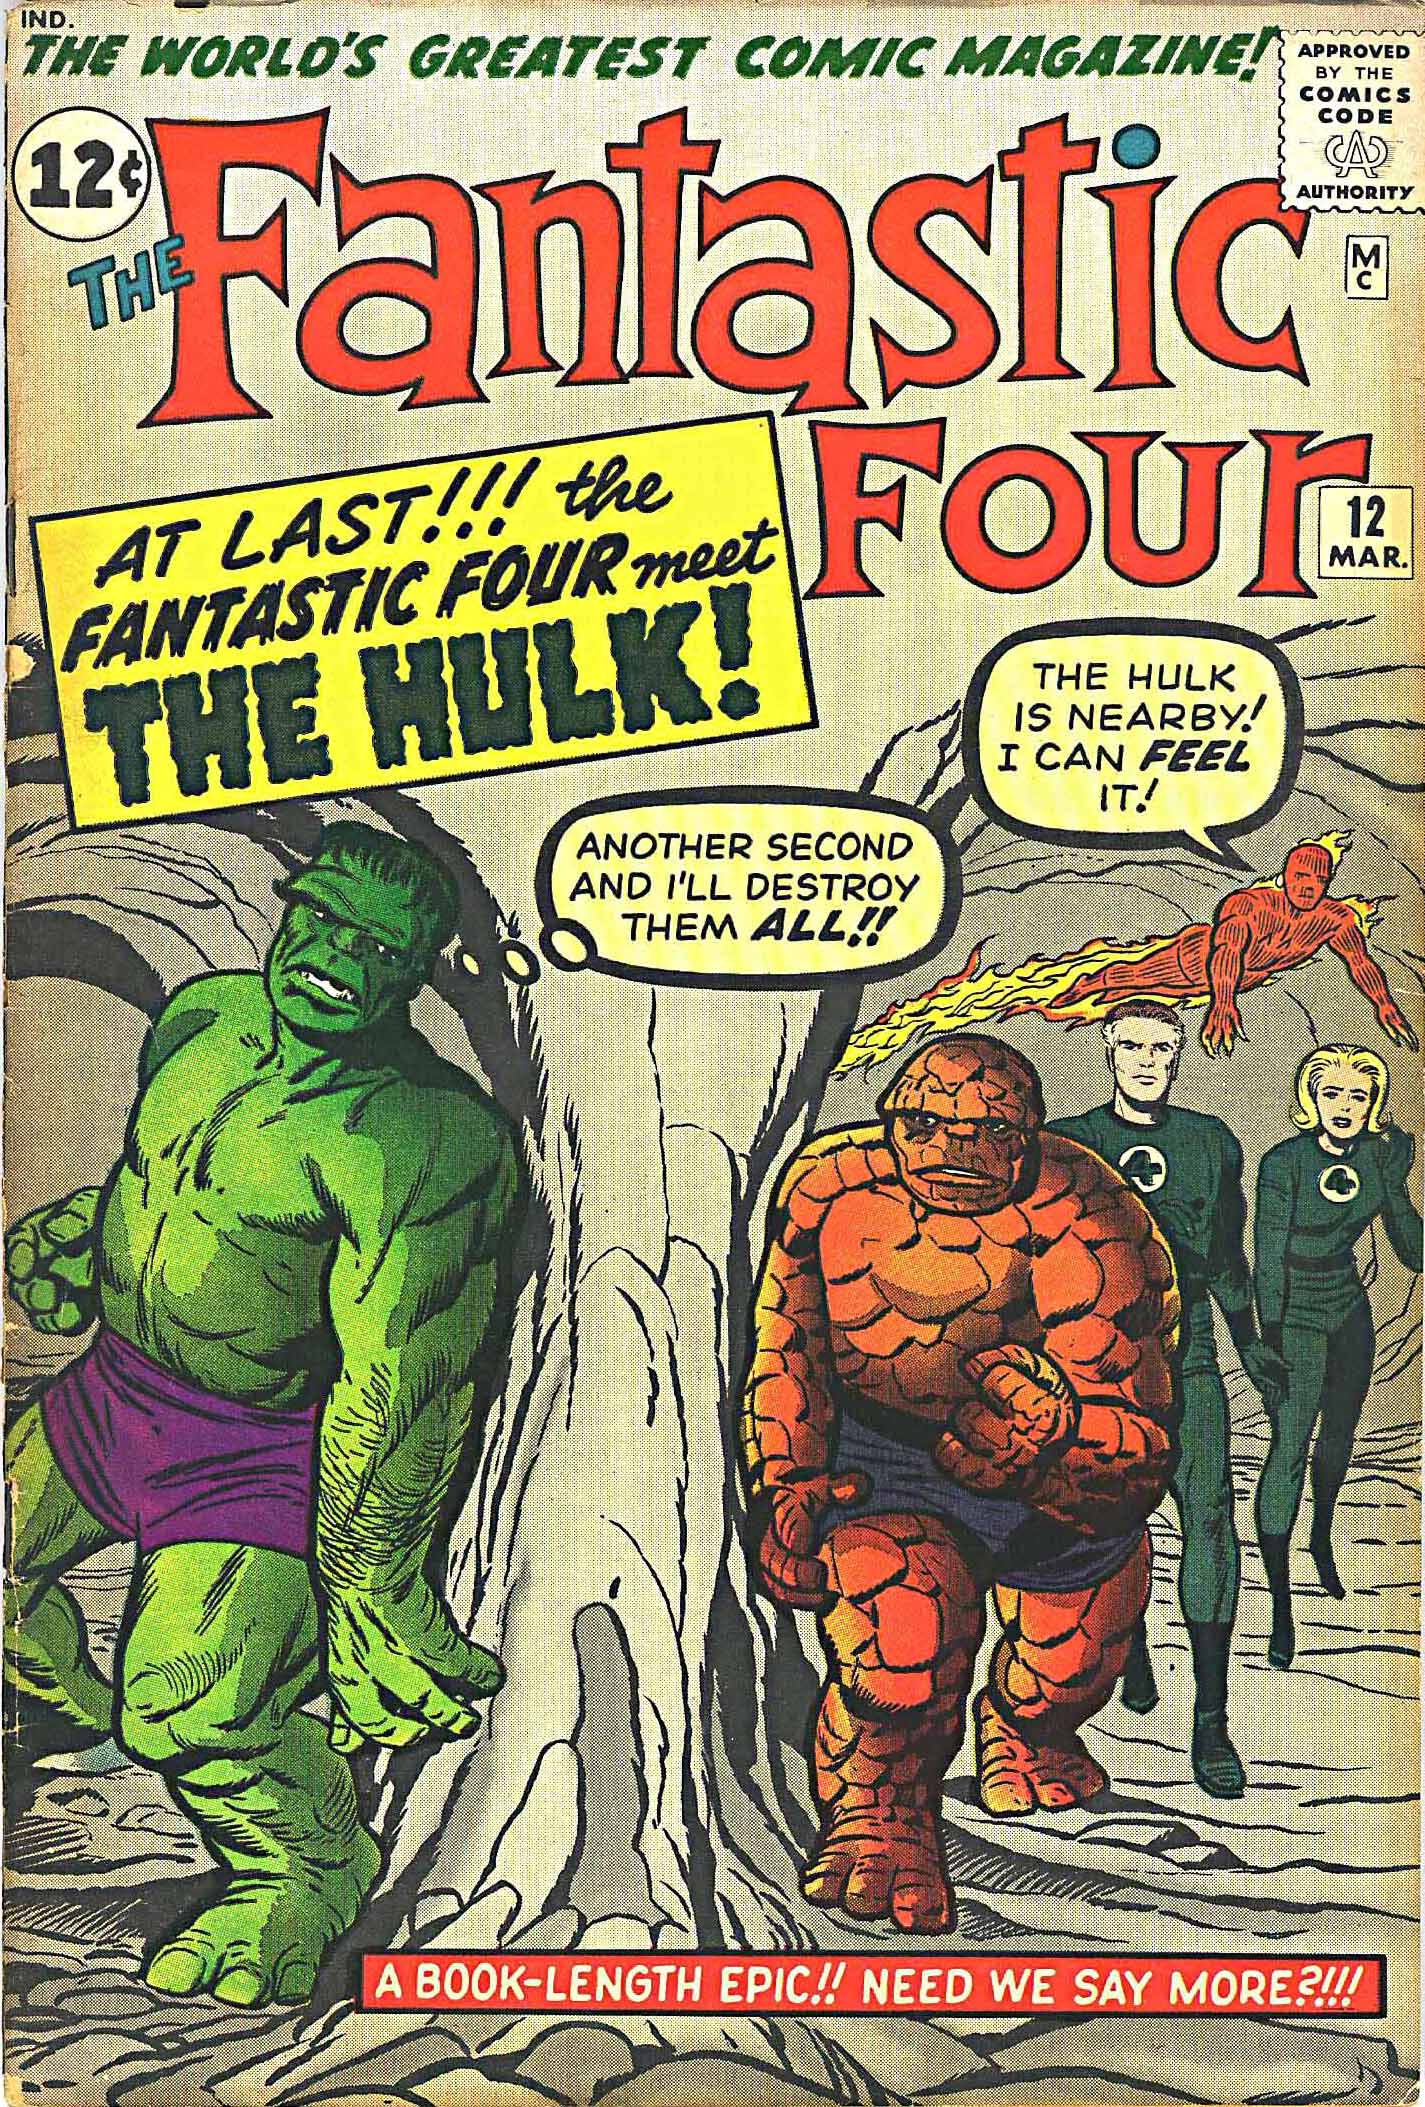 Fantastic Four #12 cover